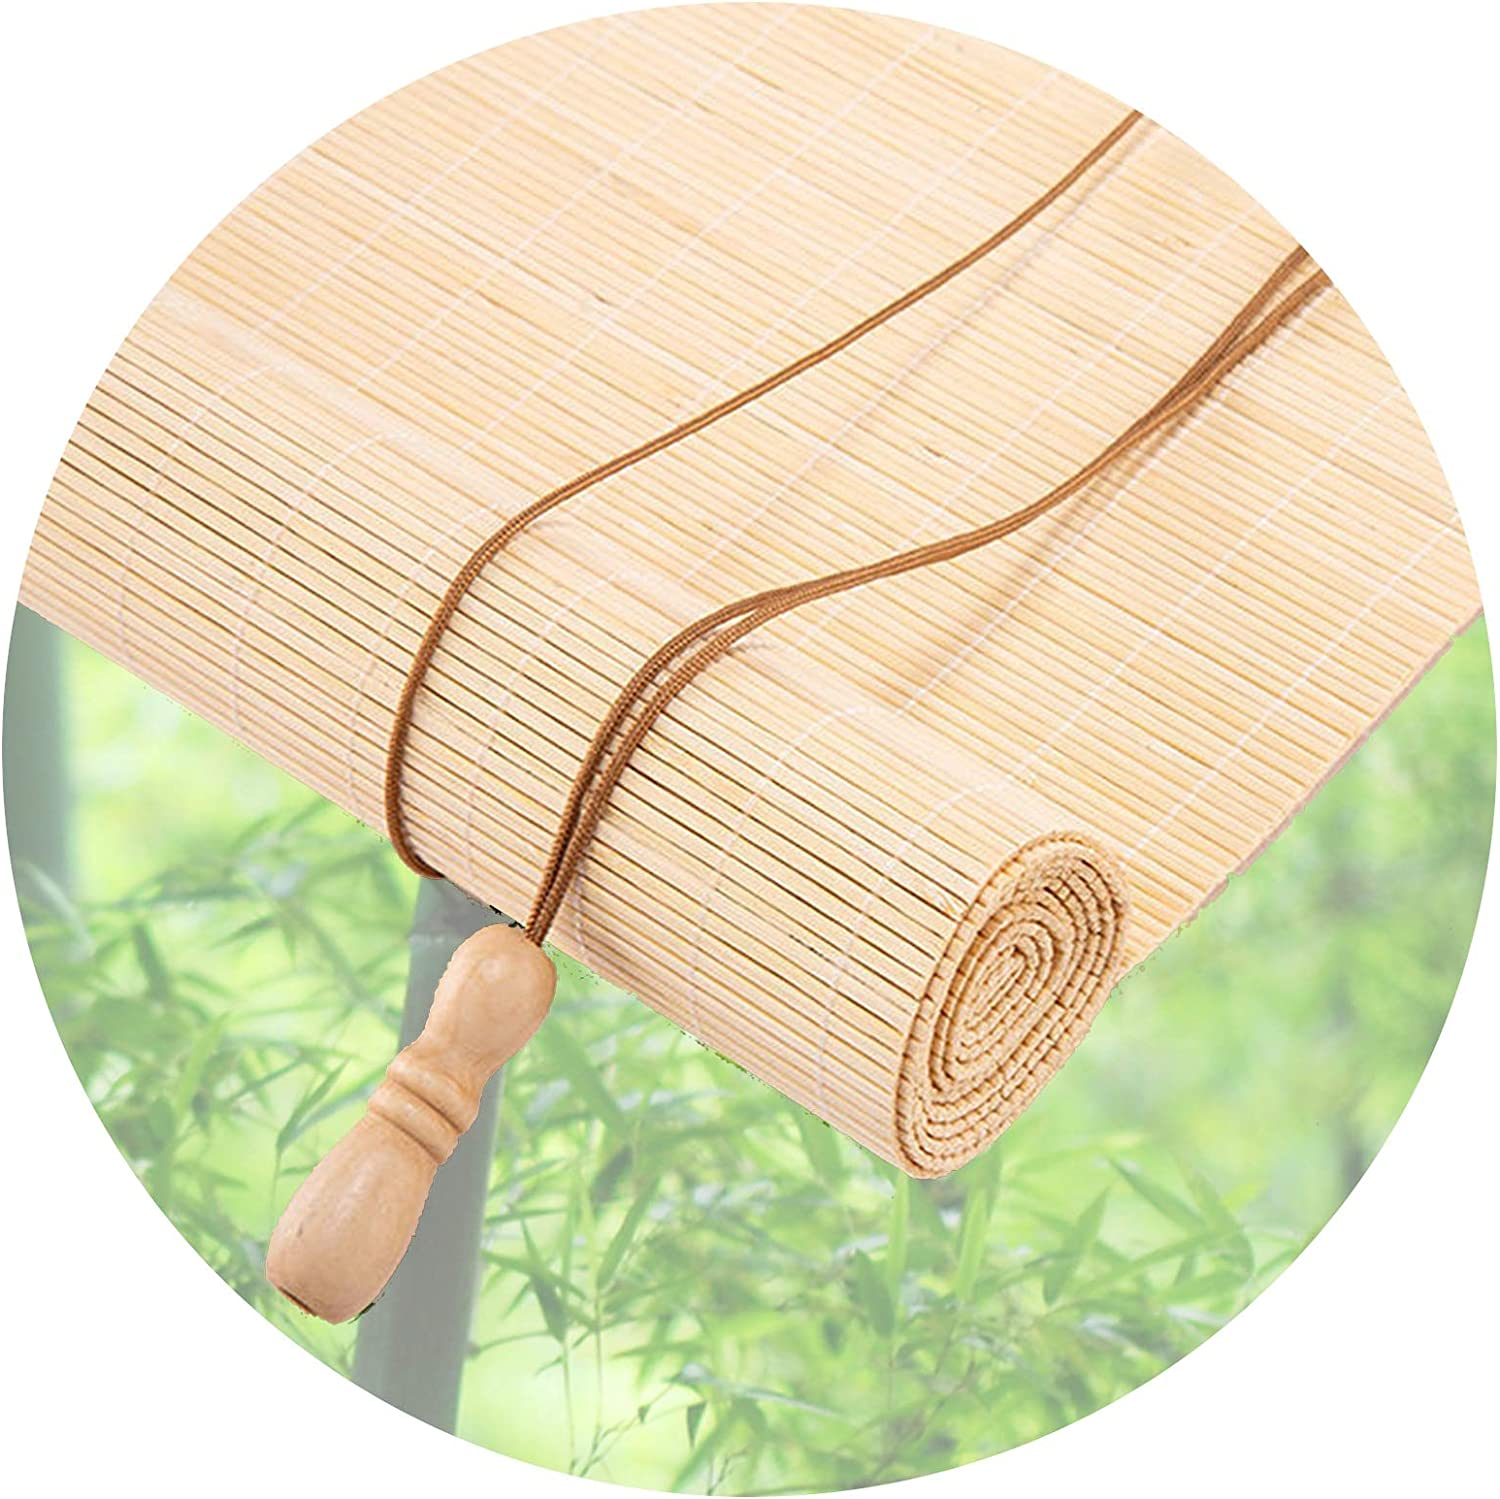 Bamboo Roller Super 4 years warranty Special SALE held Shade Light Filtering Semi-P Windows Fits Blinds